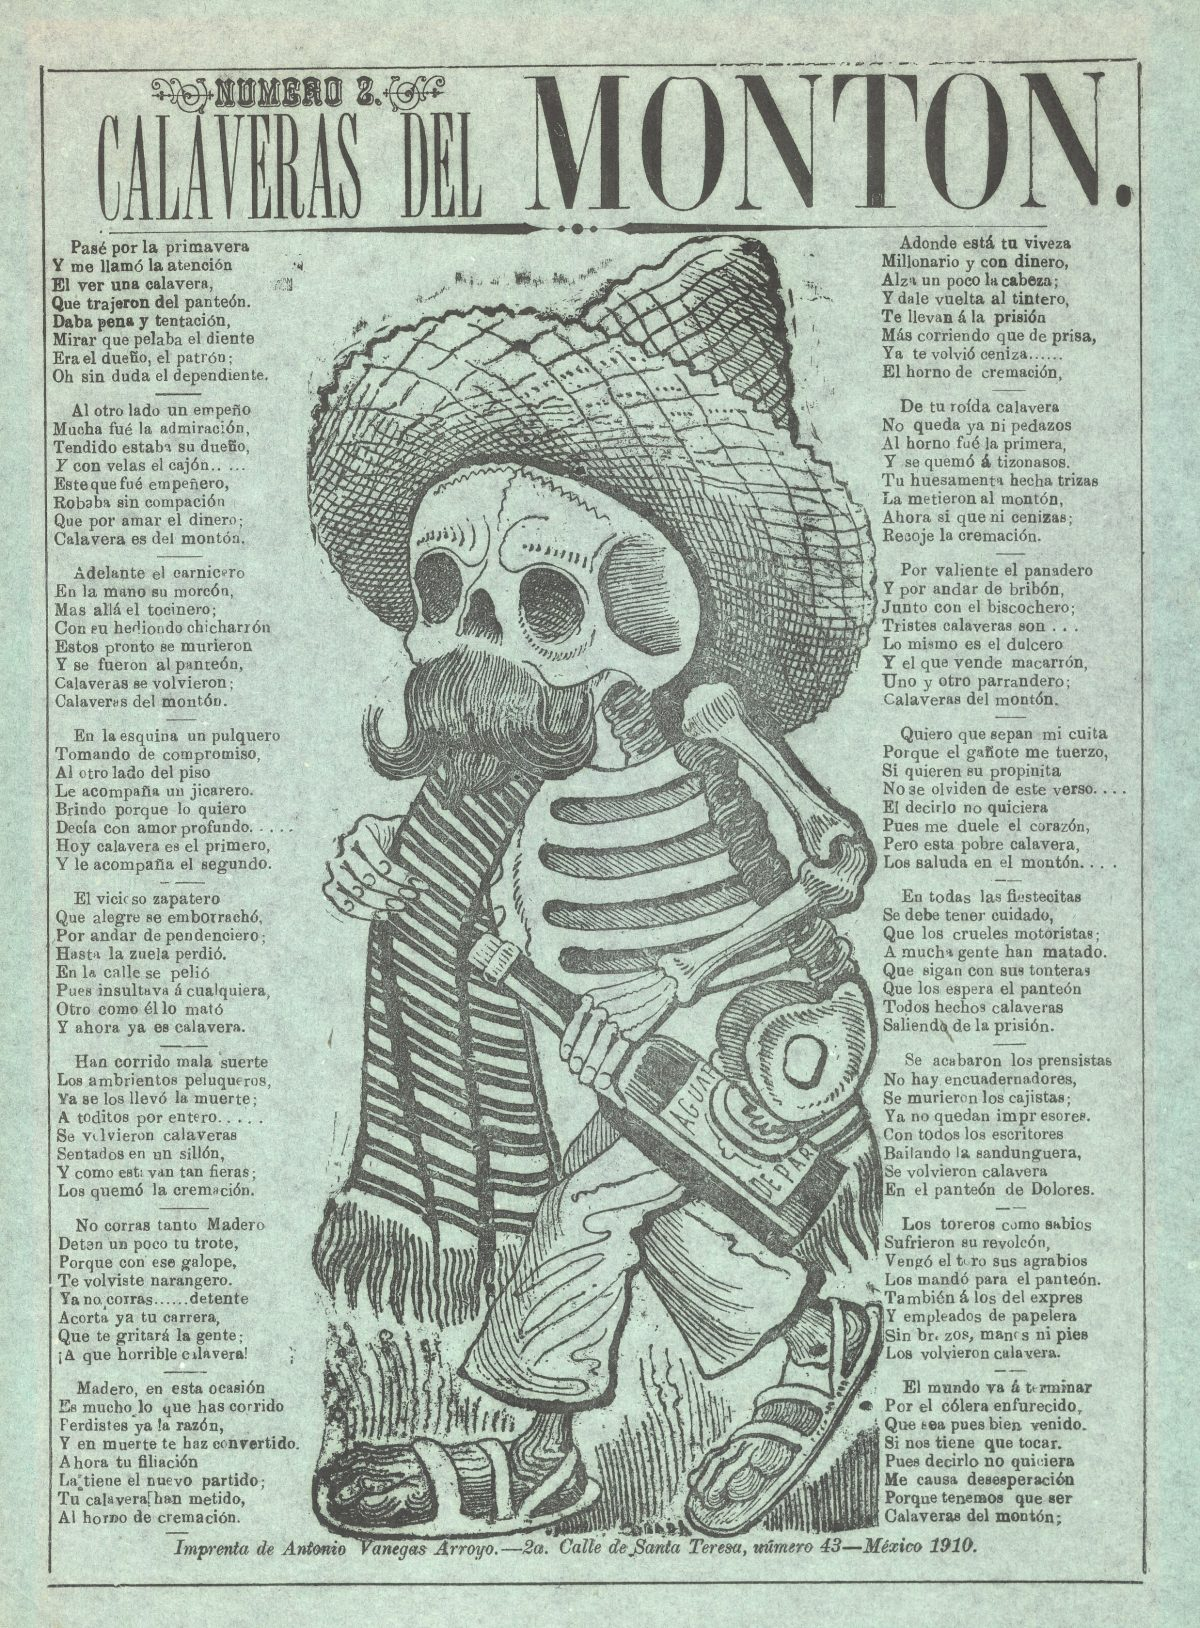 Broadside shows the skeleton of a drunken peon wearing a sombrero, serape, and sandals, holding a bottle of Aguardiente de Parras--a reference to Madero's family's maguey plantation and distillery operation. The distinctive mustache and beard further identify the calavera as Madero.